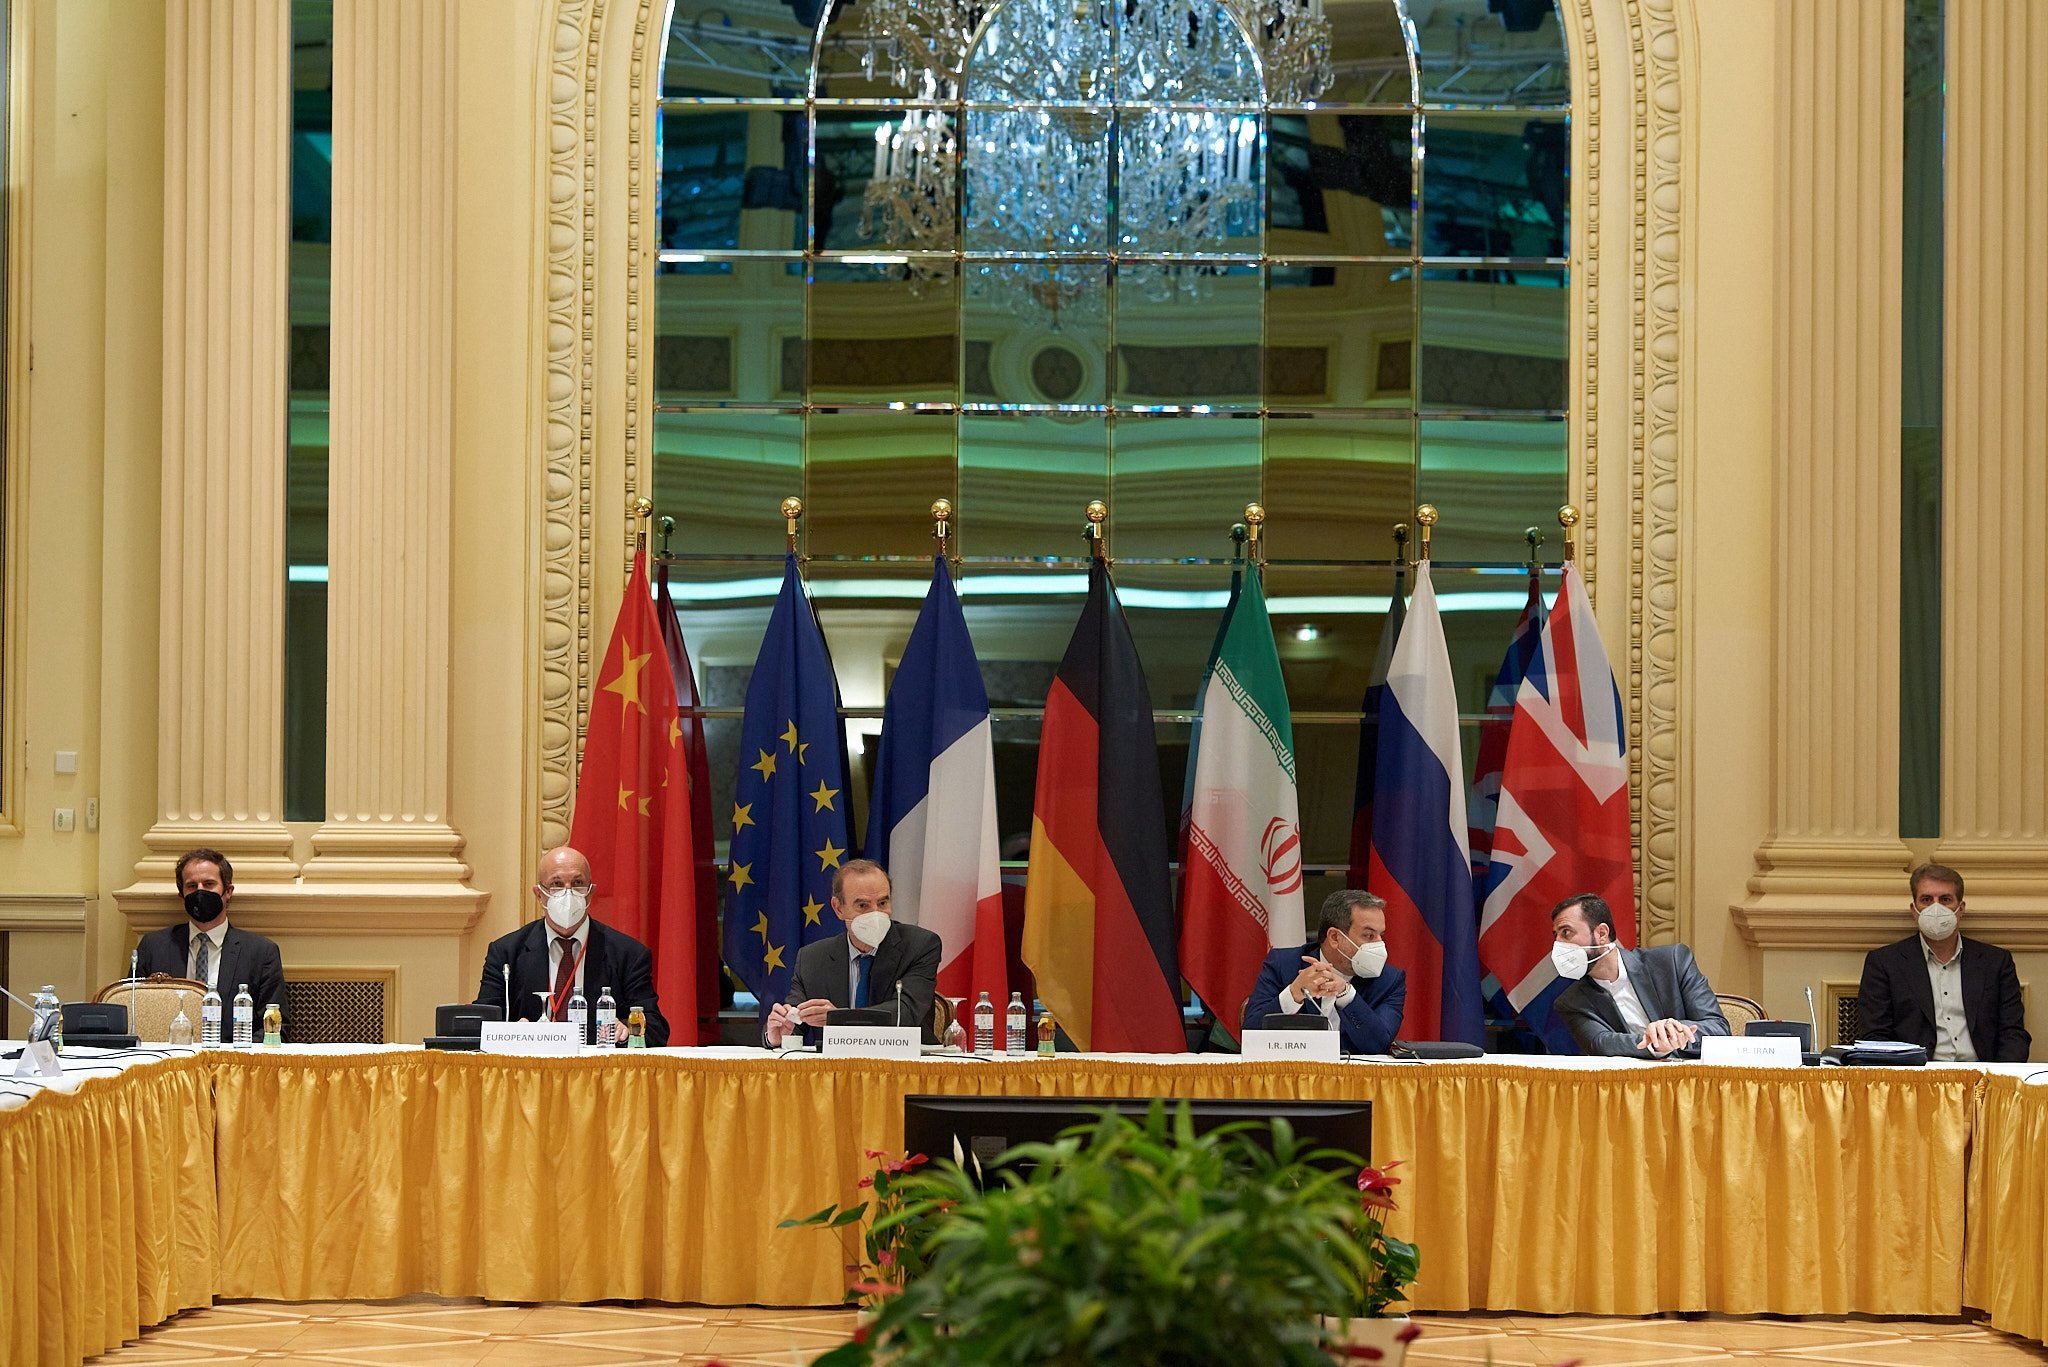 Delegation members from the remaining parties to the Iran nuclear deal – Germany, France, Britain, China, Russia and Iran – attend a meeting as they try to restore the deal, at the Grand Hotel of Vienna, in Vienna, Austria, May 1, 2021. (Photo by Handout / EU delegation in Vienna / AFP)